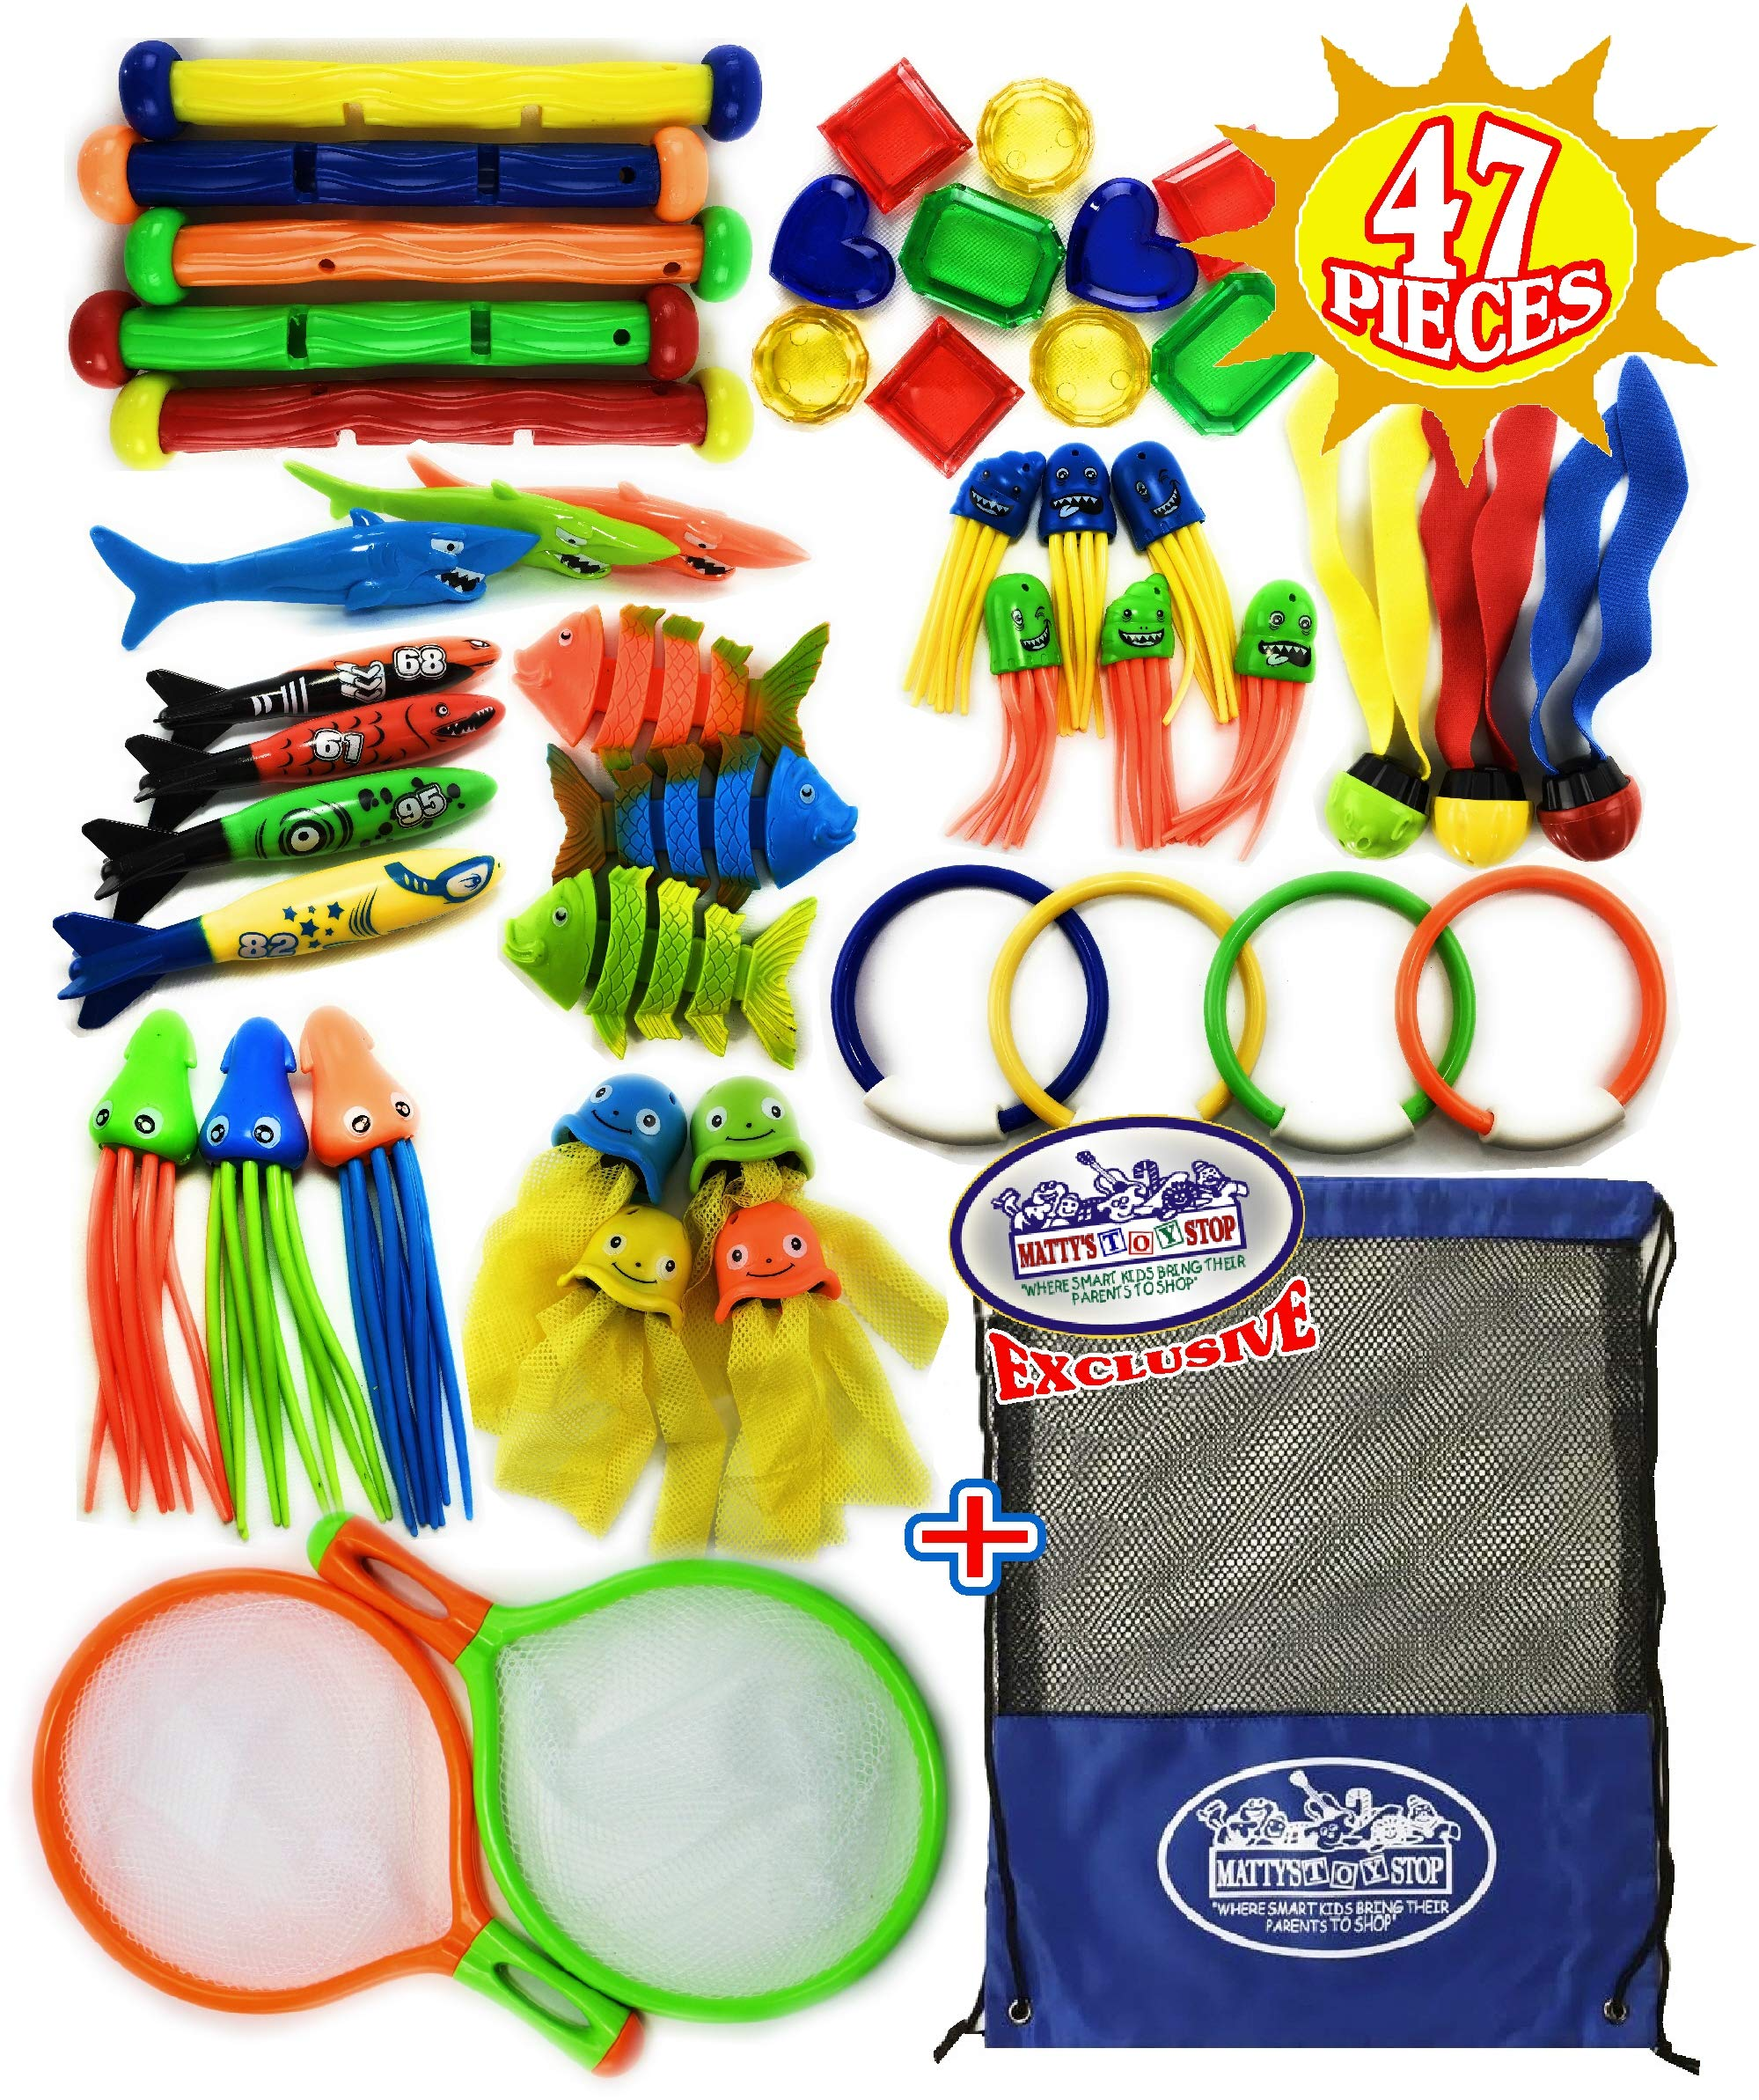 Matty's Toy Stop 47 Piece Super Ultimate Dive Set for Diving/Swimming Pools Featuring Dive Sticks, Dive Rings, Gems, Balls, Fish, Torpedo, Shark, Octopus, Jellyfish, Fishing Nets & Bonus Storage Bag by Matty's Toy Stop